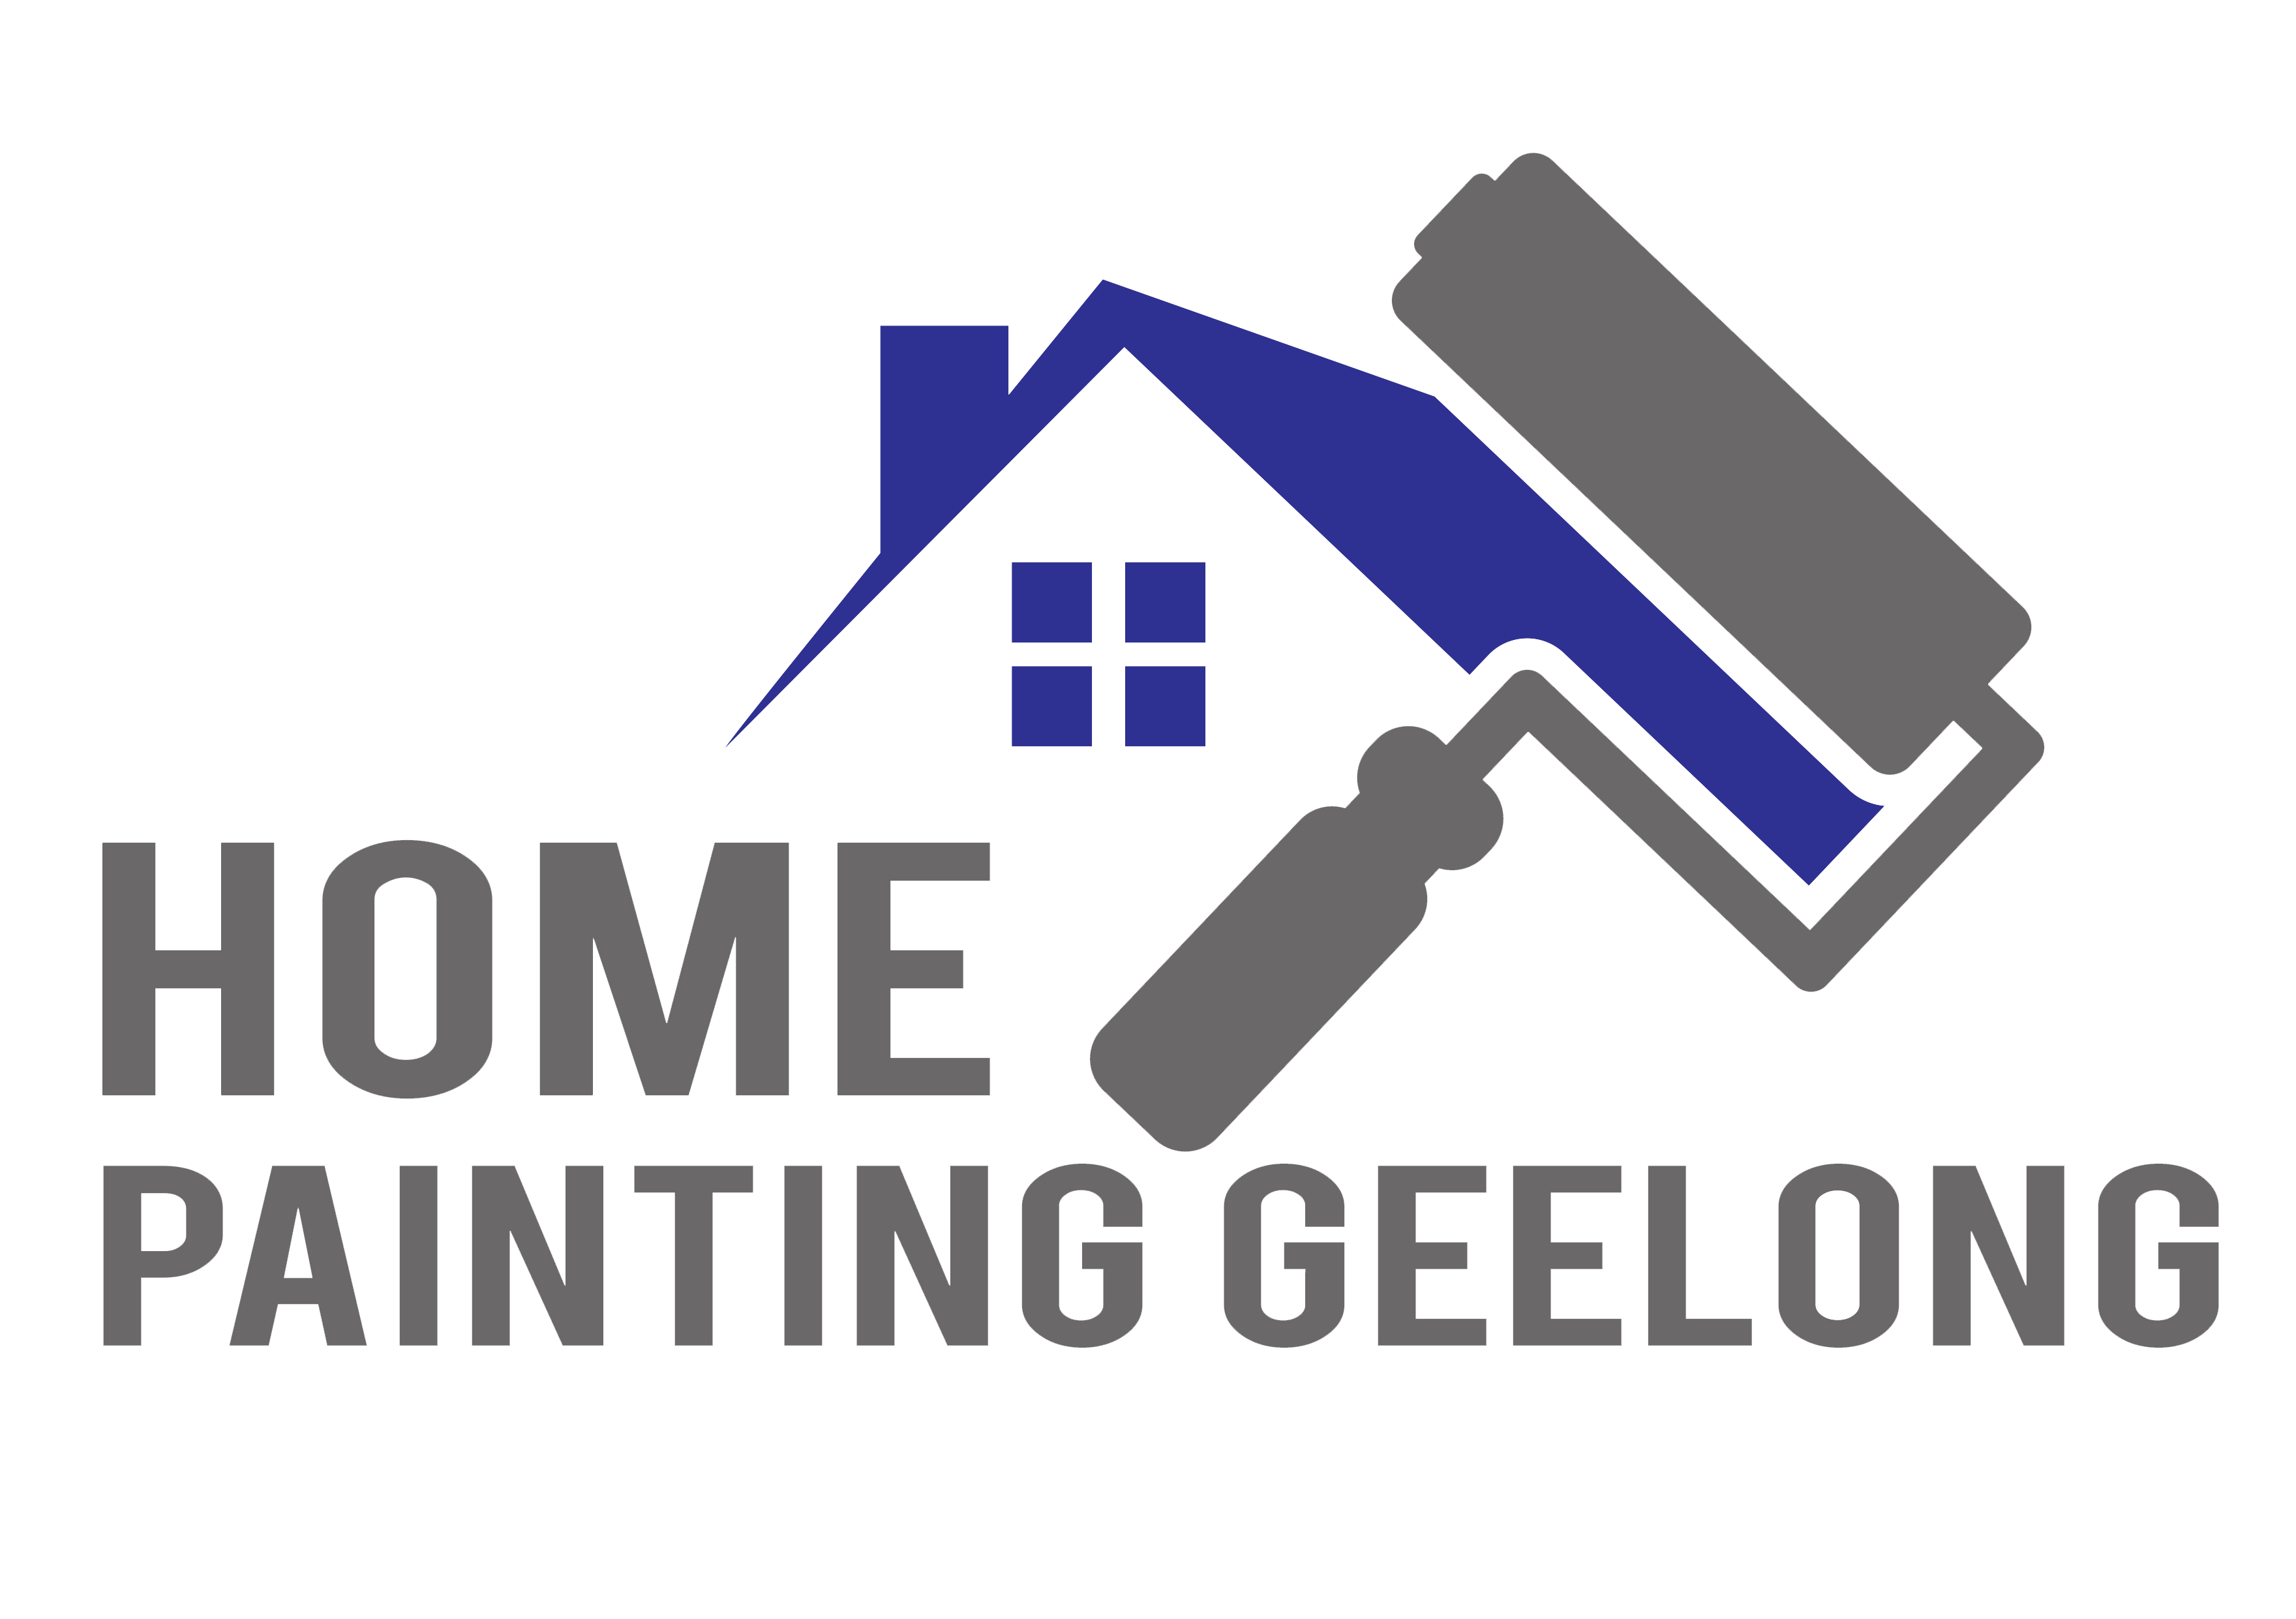 Home Painting Geelong